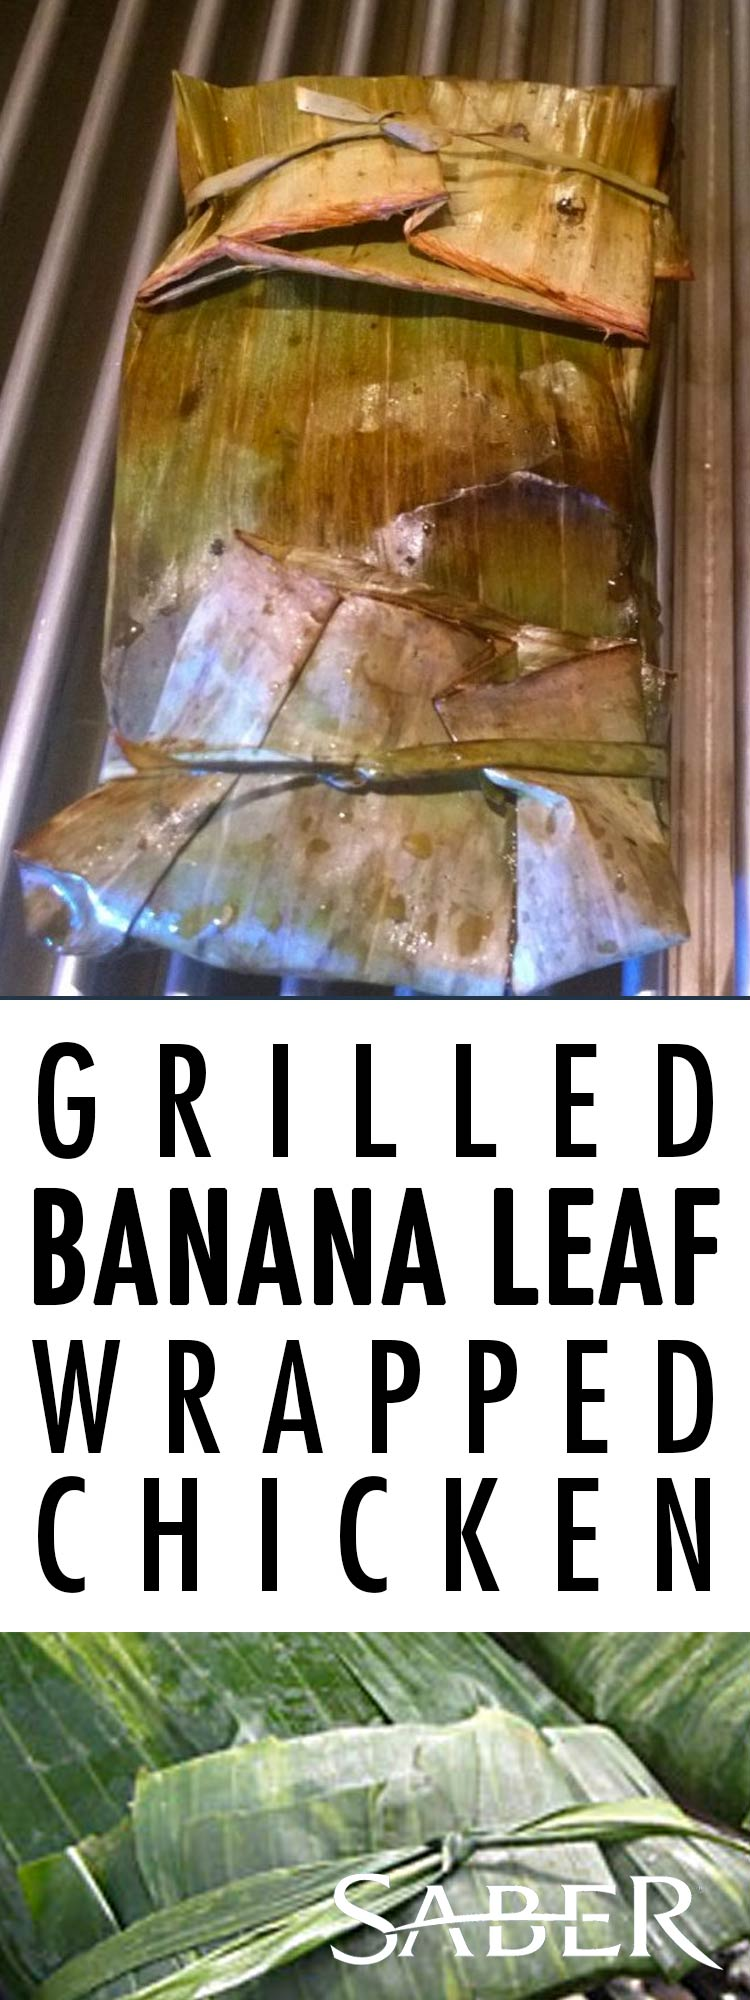 banana leaf wrapped chicken